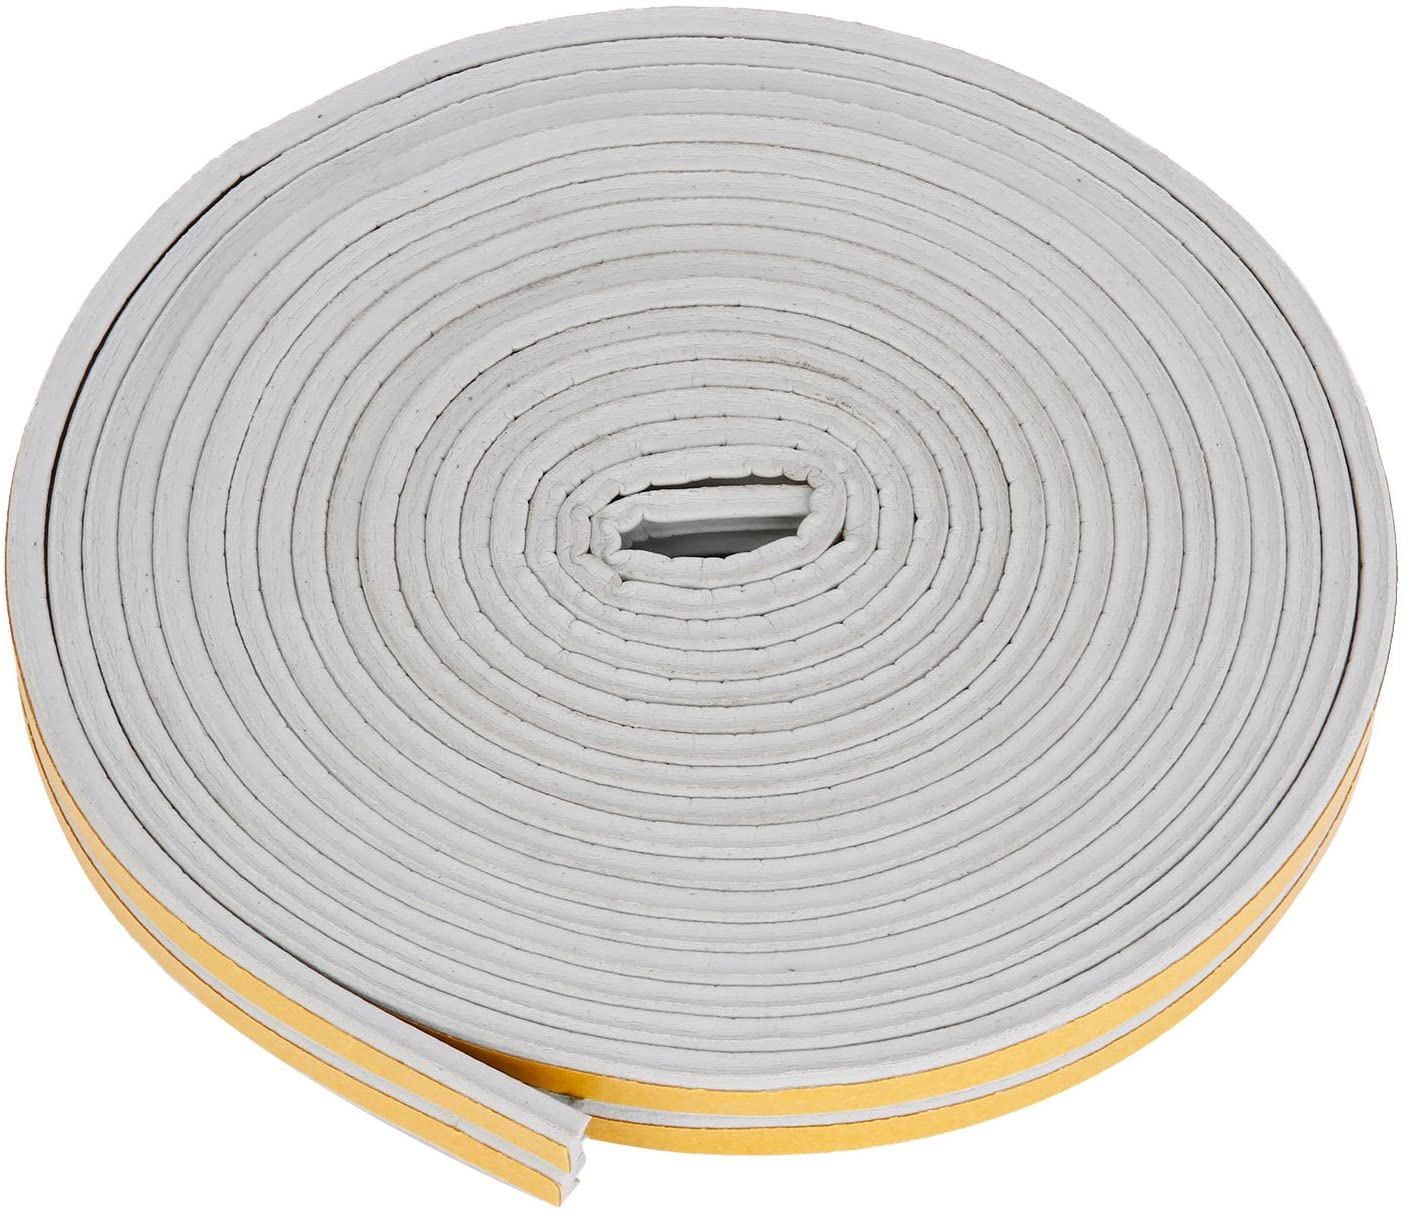 Indoor Weather Stripping, Self Adhesive EPDM Doors and Windows Draught Excluder Foam Seal Strip Soundproofing Collision Avoidance Rubber Weatherstrip, 7/20'' X 6/25'', 33ft, Grey